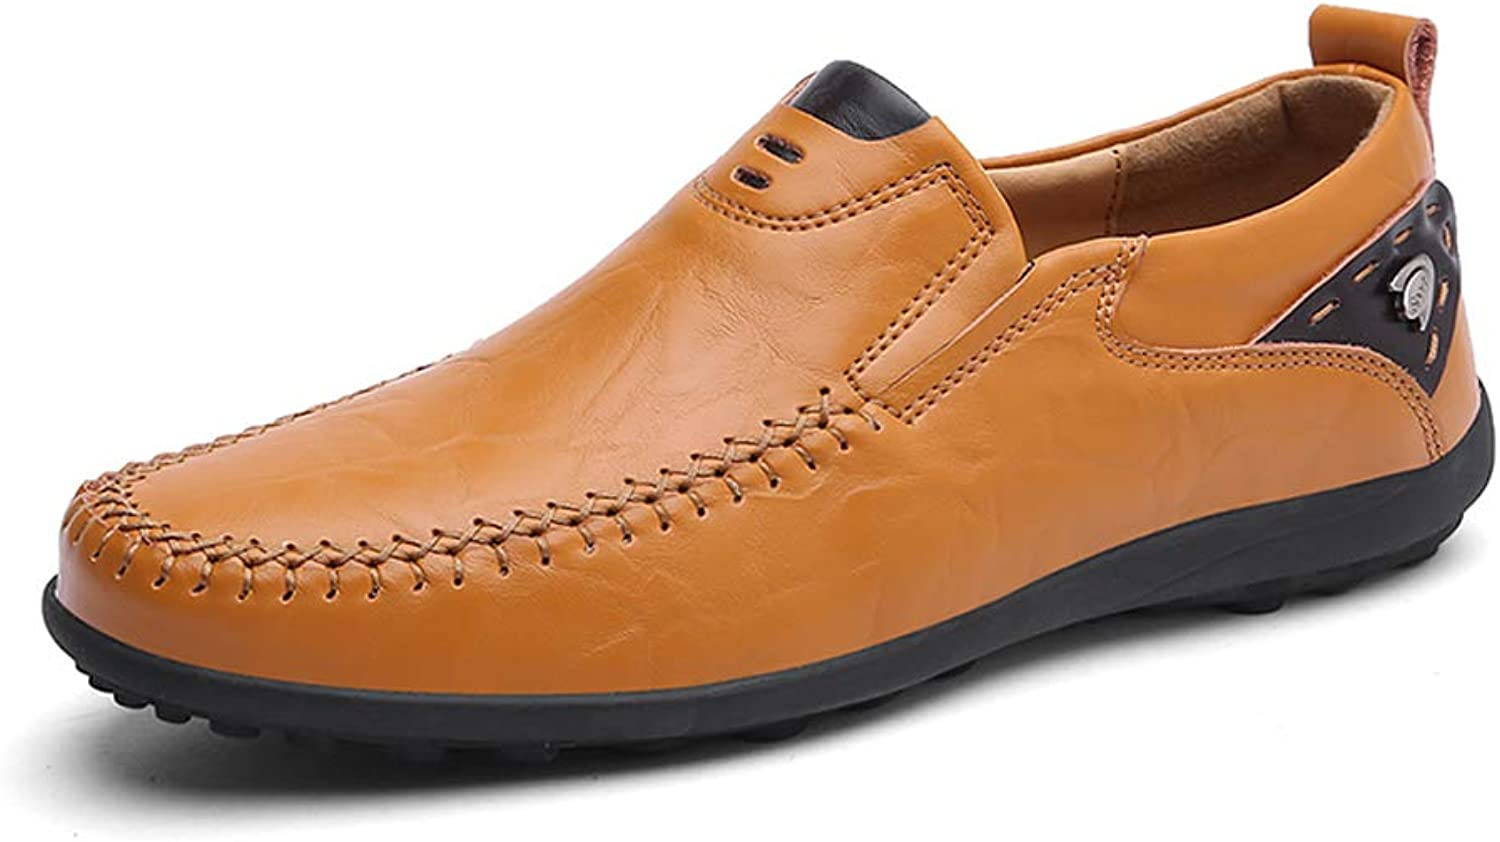 Leather shoes Men's New Business Casual shoes England Dress Youth Men's shoes 47 Extra Large Size Men's Bean Lazy Driving shoes (color   C, Size   41)